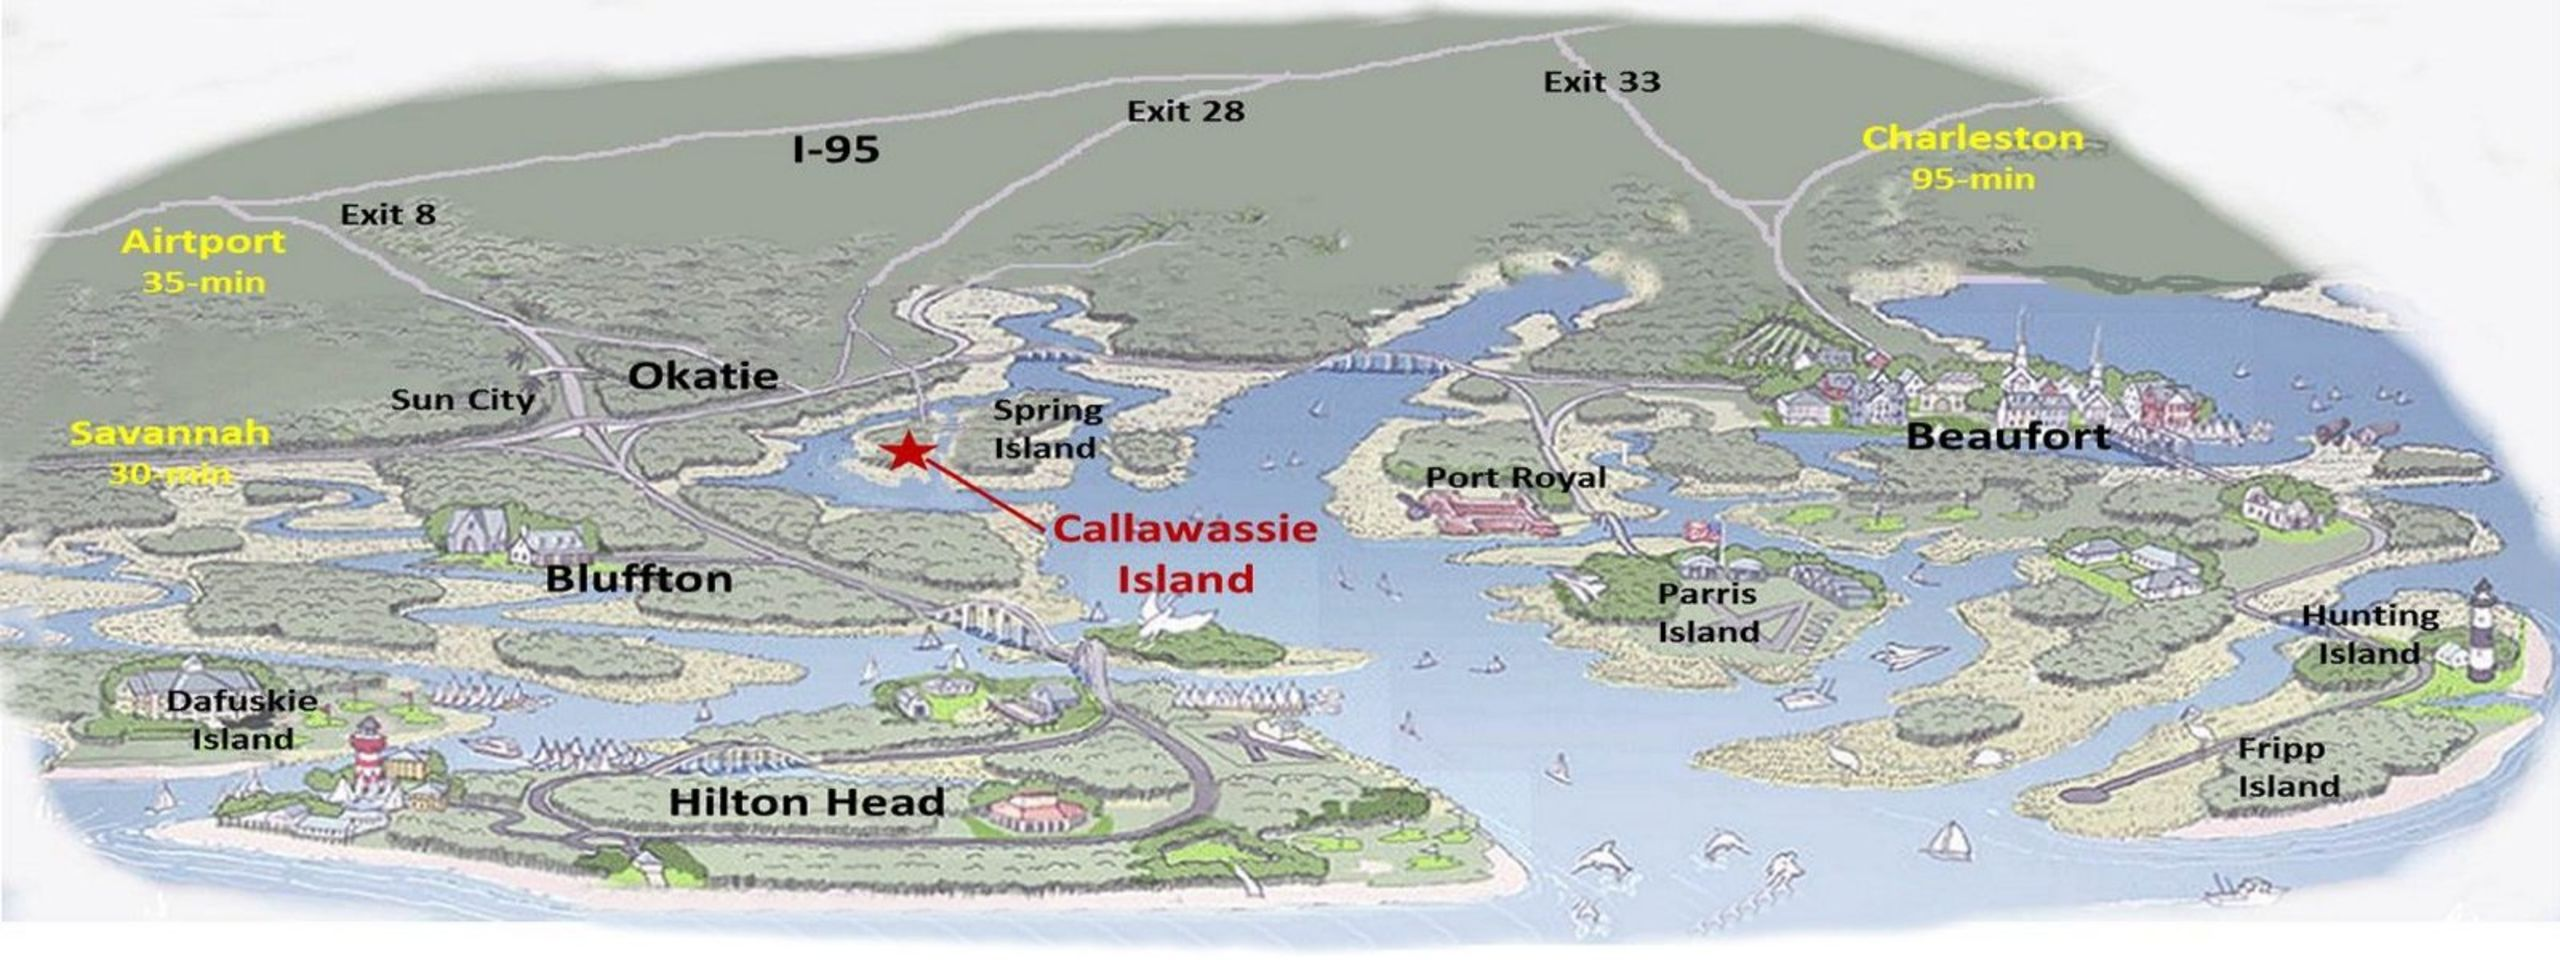 Callawassie Island is the Keystone of Select Lowcountry Communities